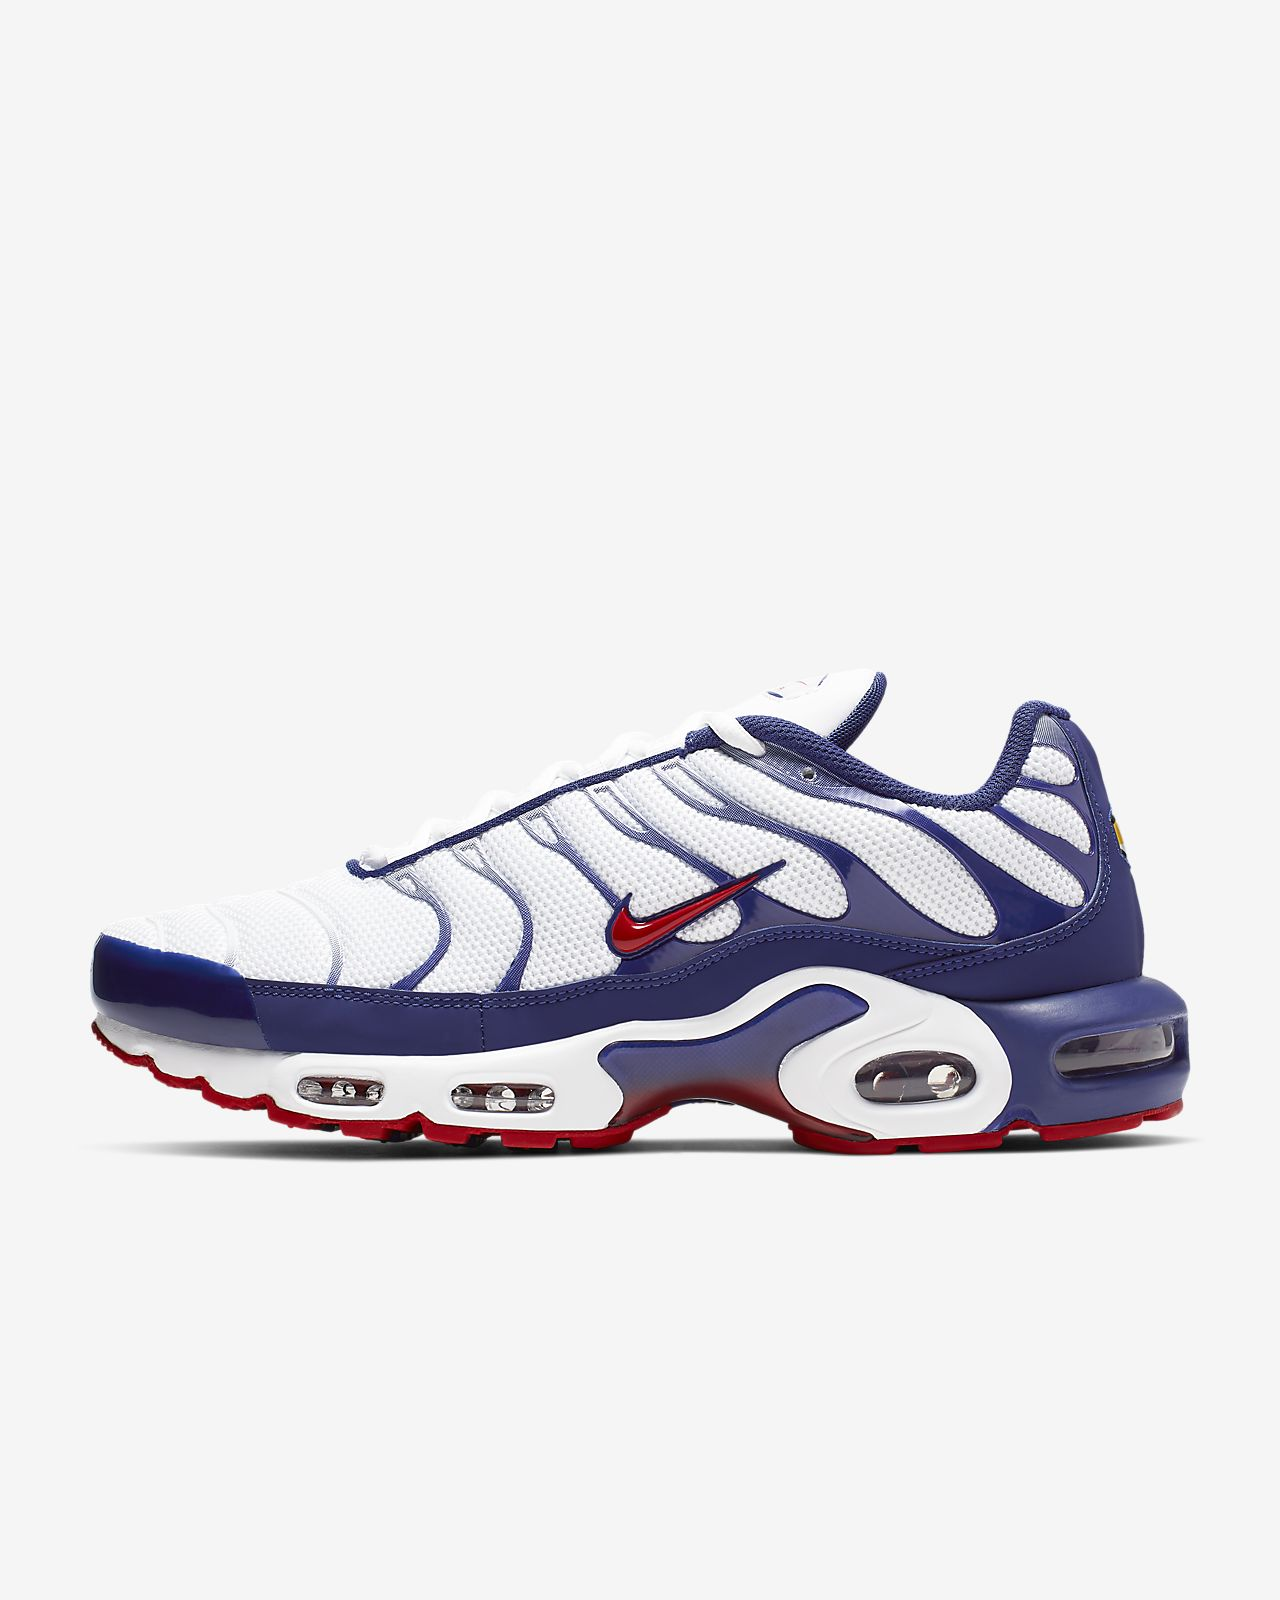 sale retailer 7dcb5 19f4b Nike Air Max Plus Men's Shoe